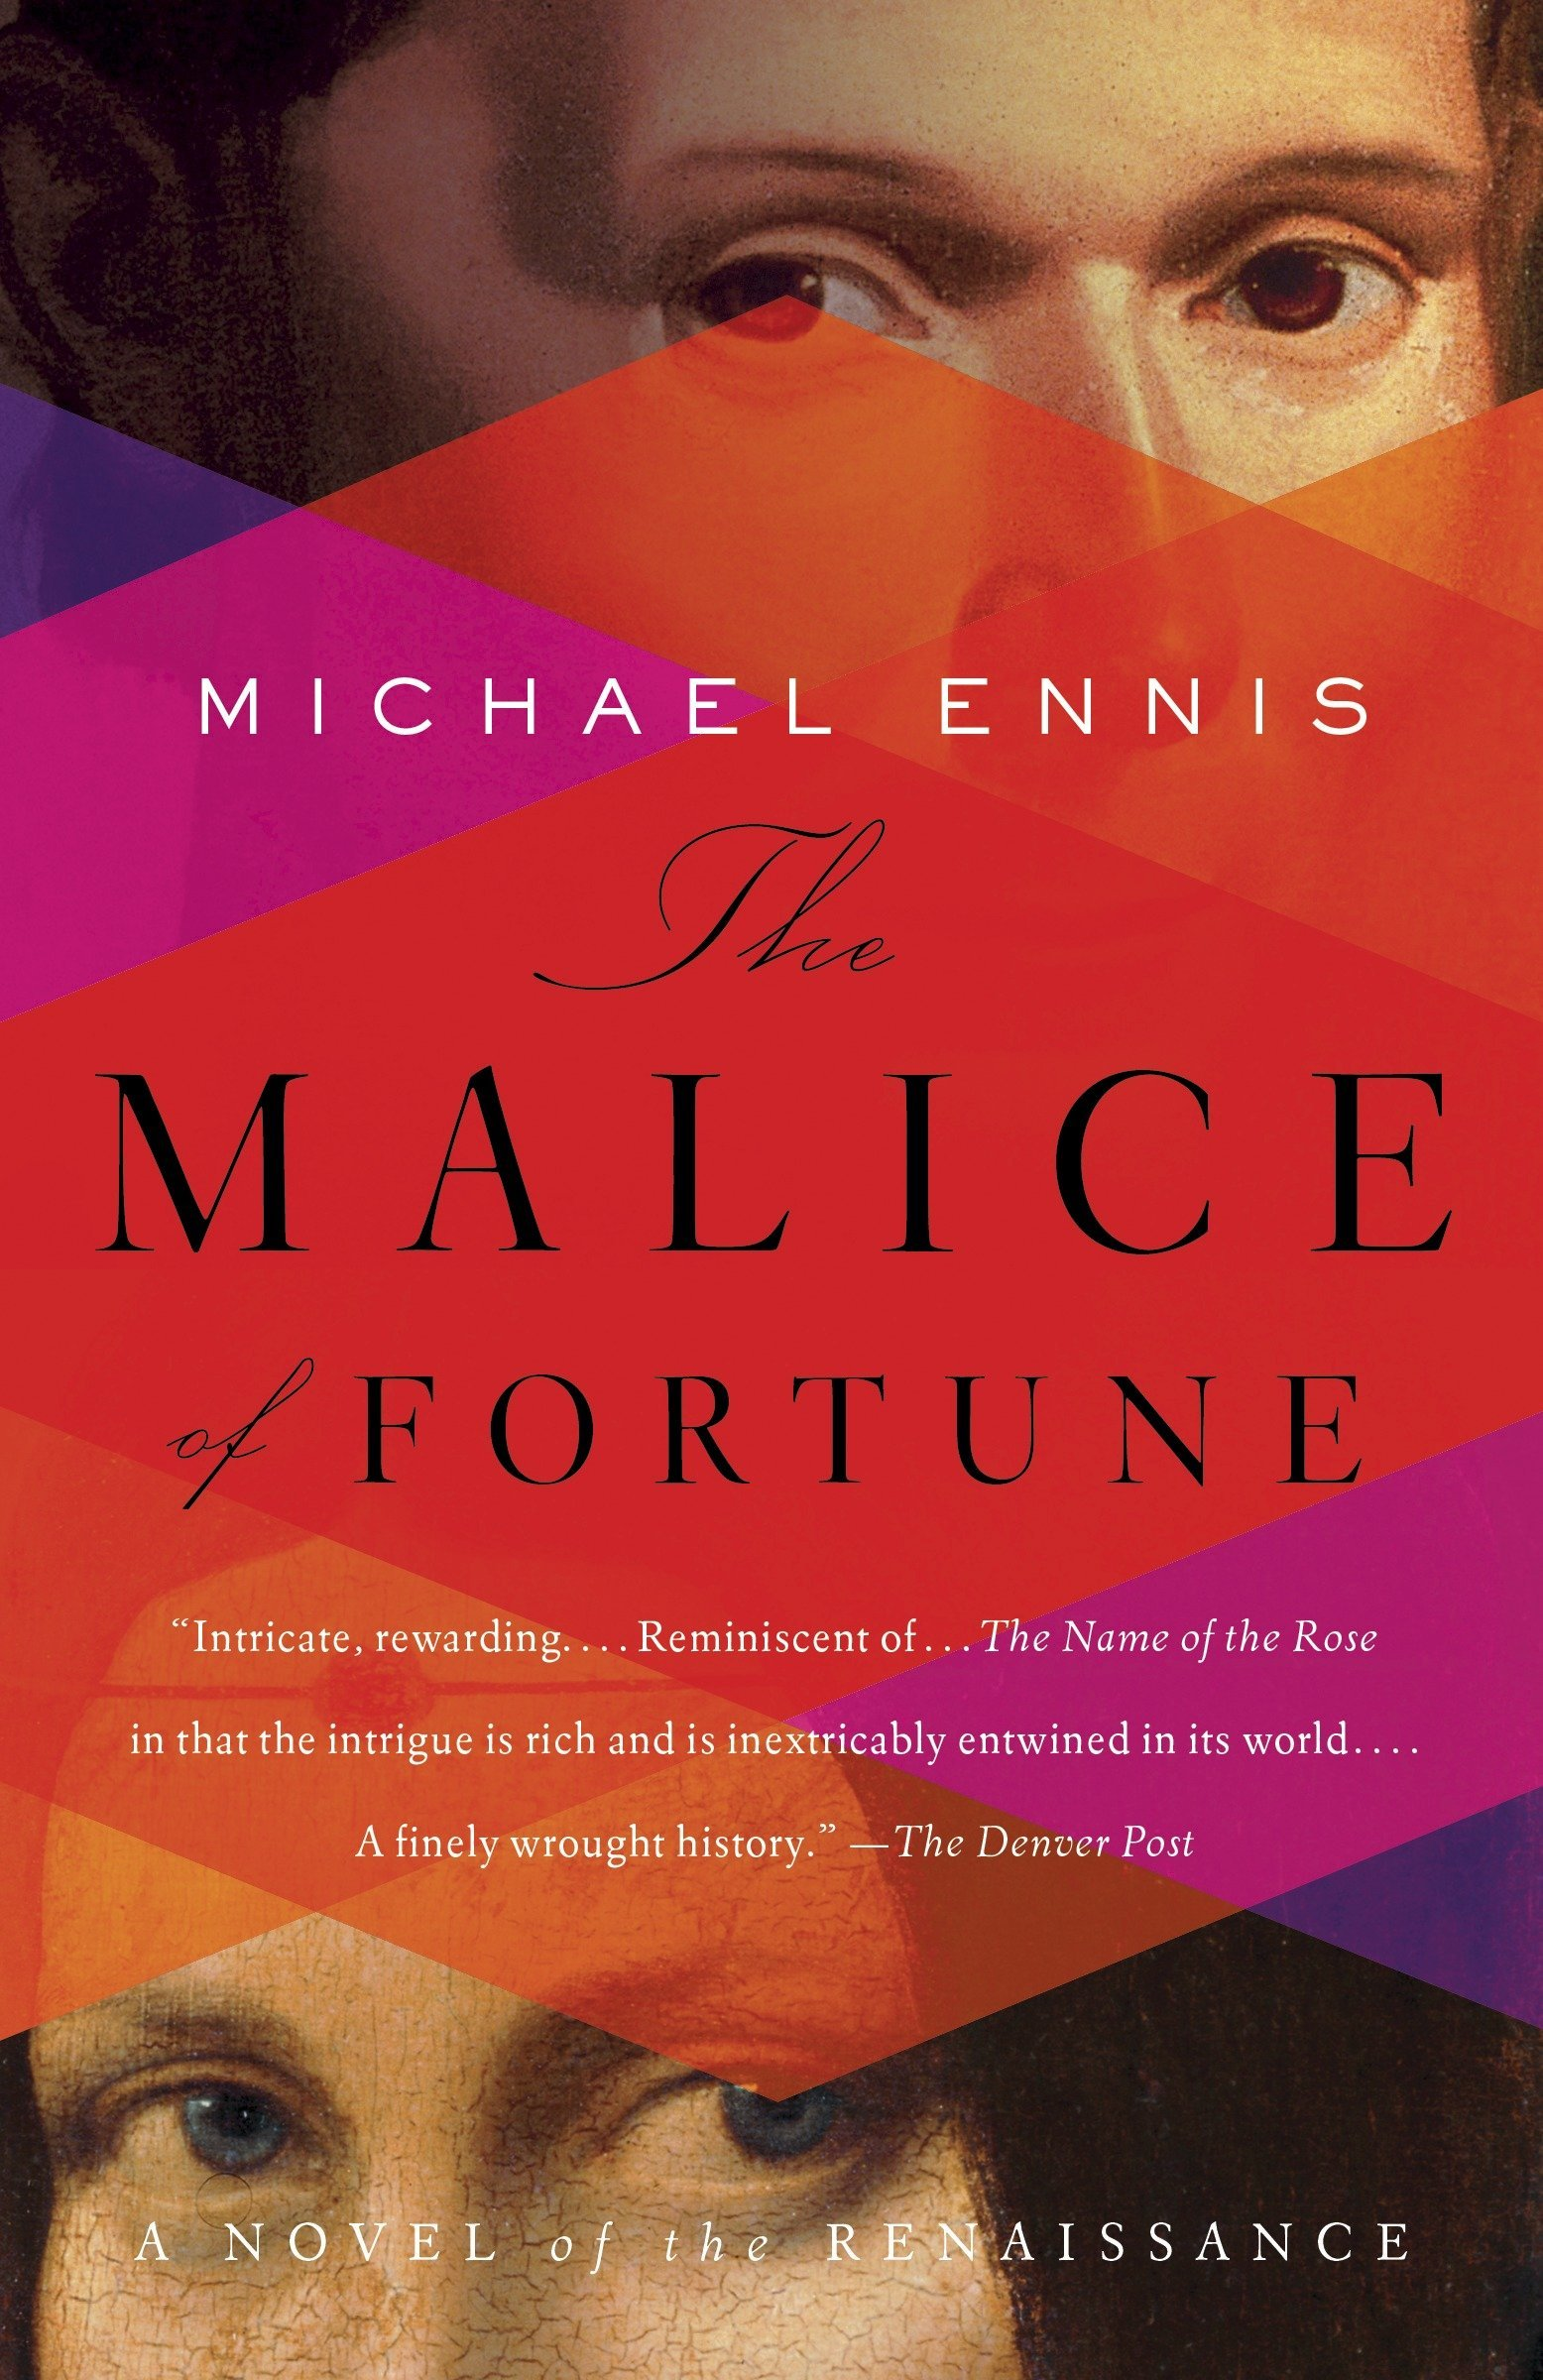 Malice of Fortune by Michael Ennis - In this historical murder mystery, Leonardo teams up with Niccolo Machiavelli to hunt down a serial killer. It's a thrilling, well-researched read that brings Renaissance Italy alive. (Bonus: if you're interested in the Borgia family, this one is especially for you).